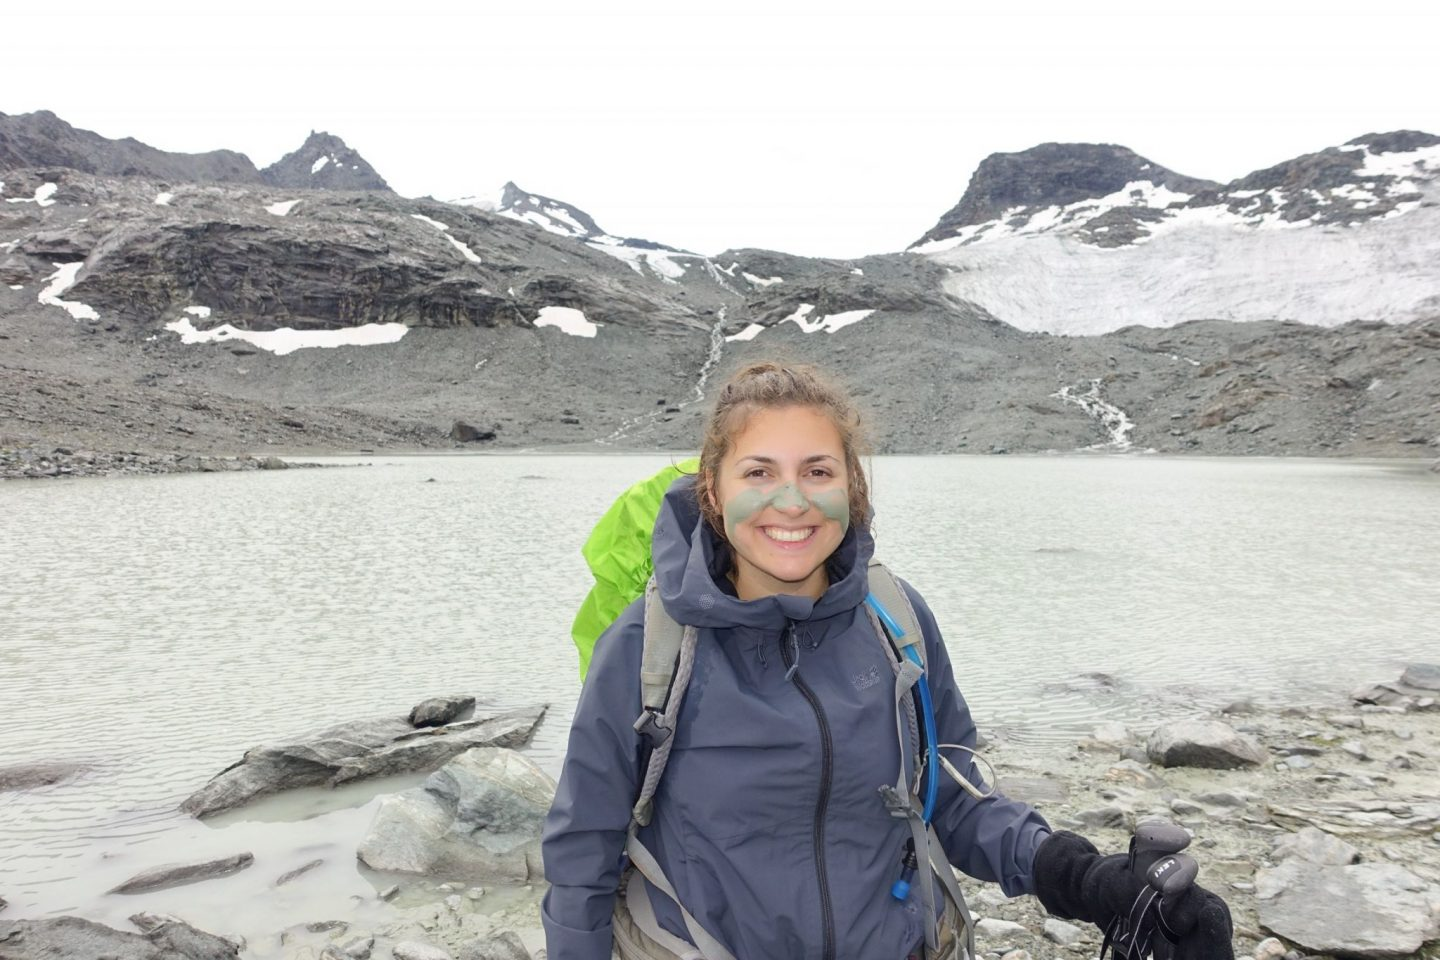 Nell smiling at the camera with a lake in the background, and clay streaks on her face. She's wearing waterproof hiking essentials